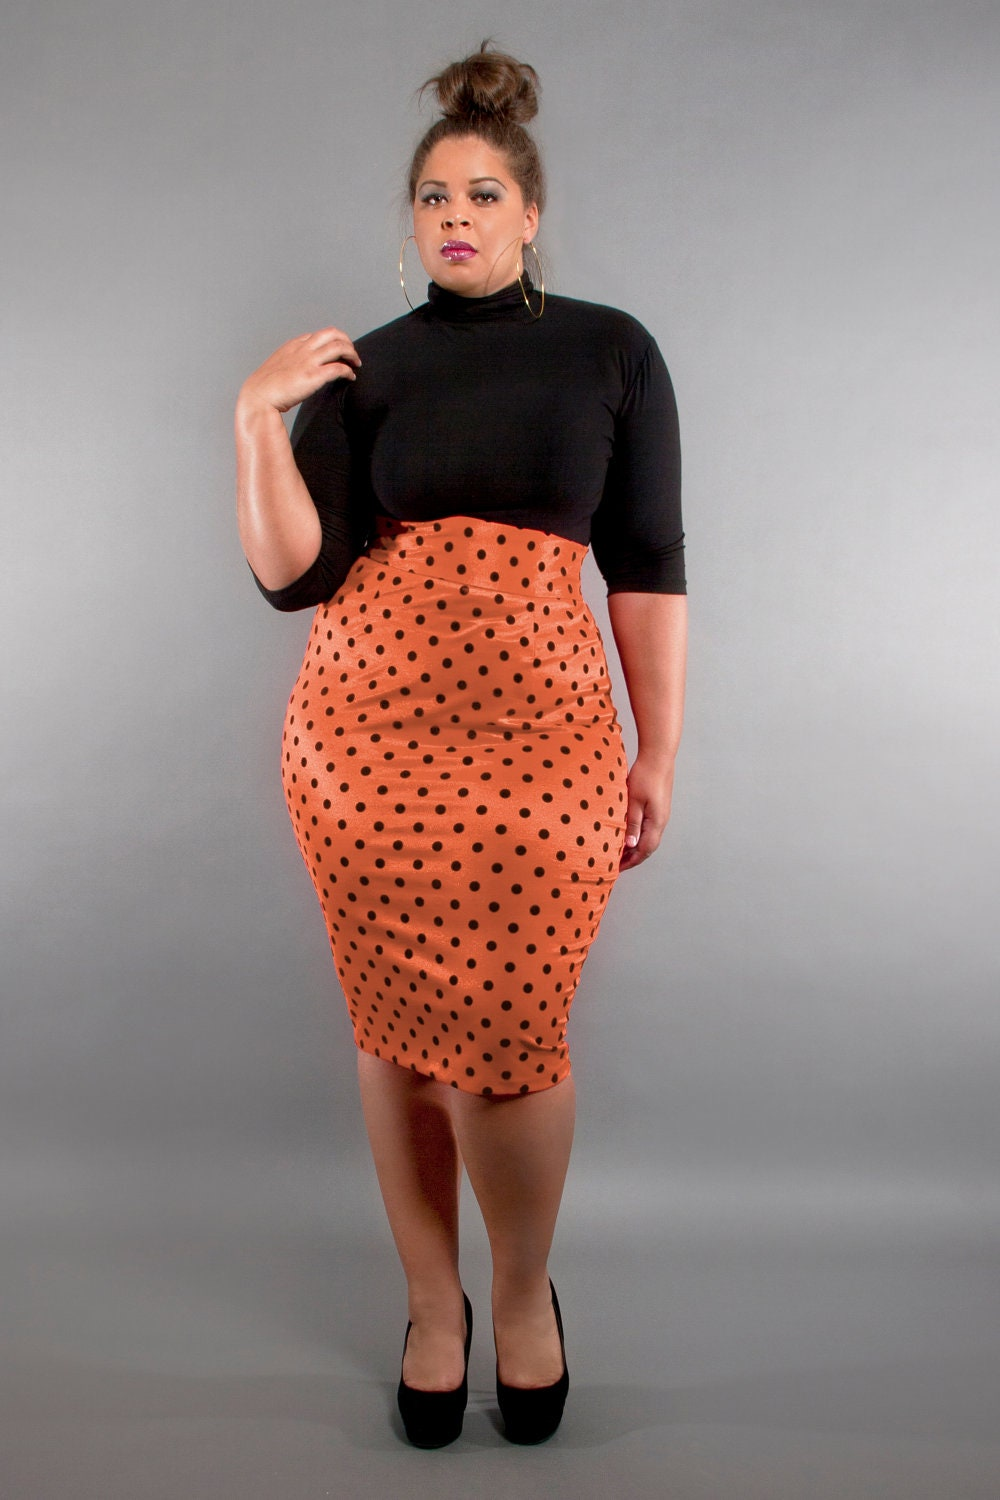 Jibri Plus Size High Waist Pencil Skirt Sherbet By Jibrionline